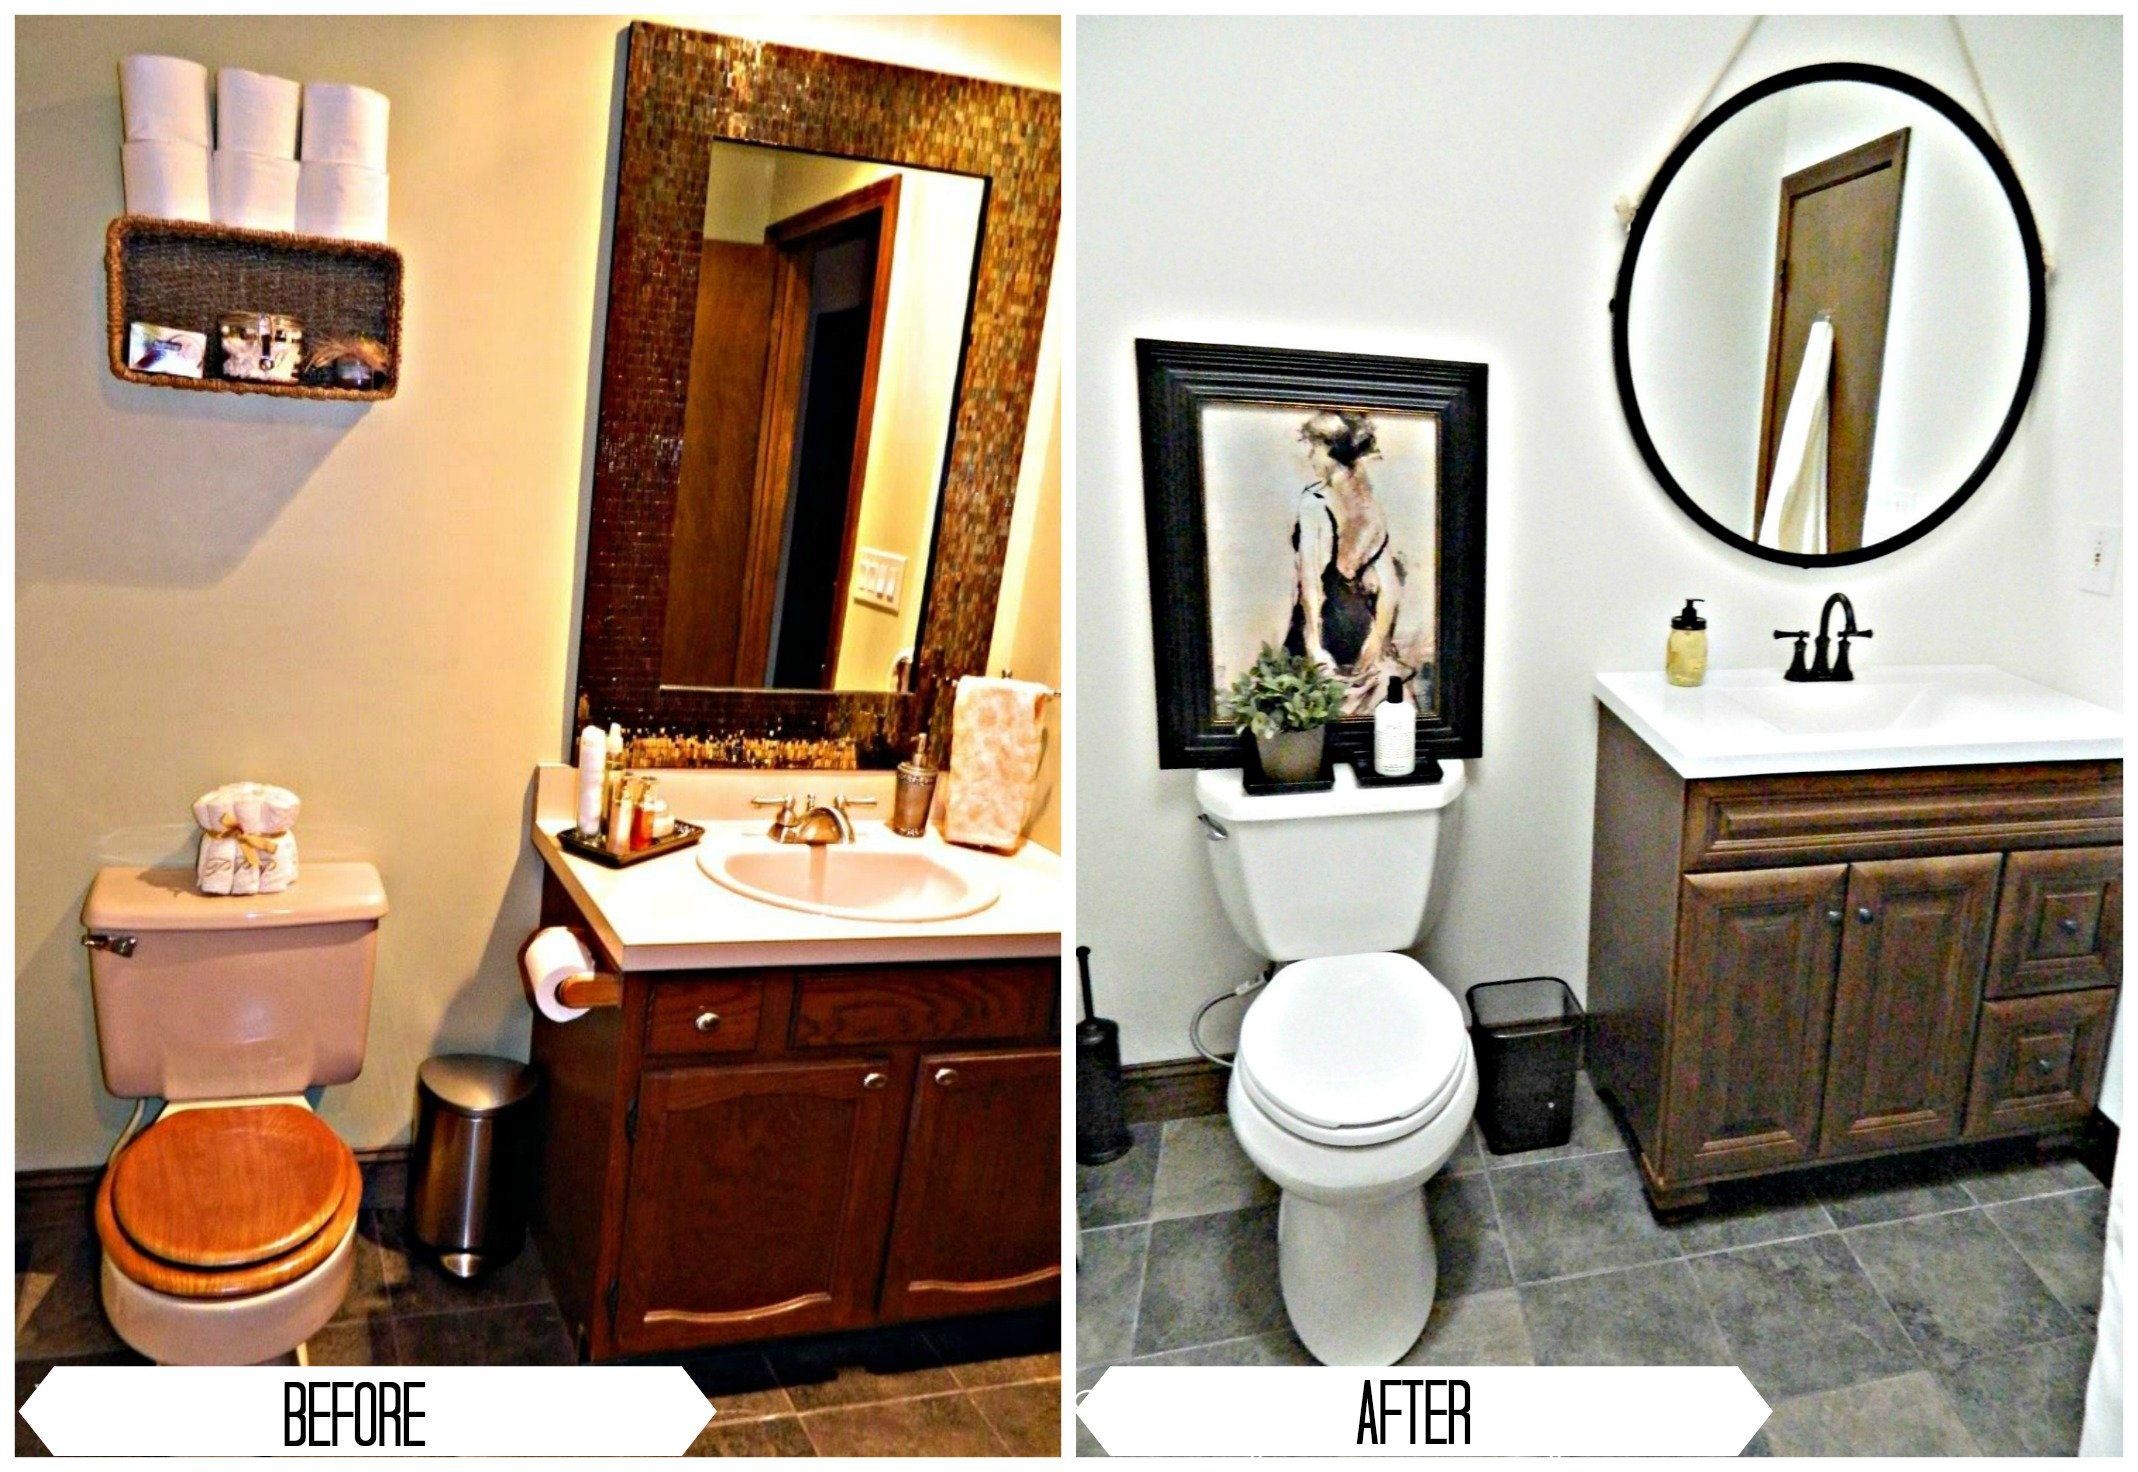 Bathroom Remodel Reddit bathroom renovation under $1,000 | finding silver linings